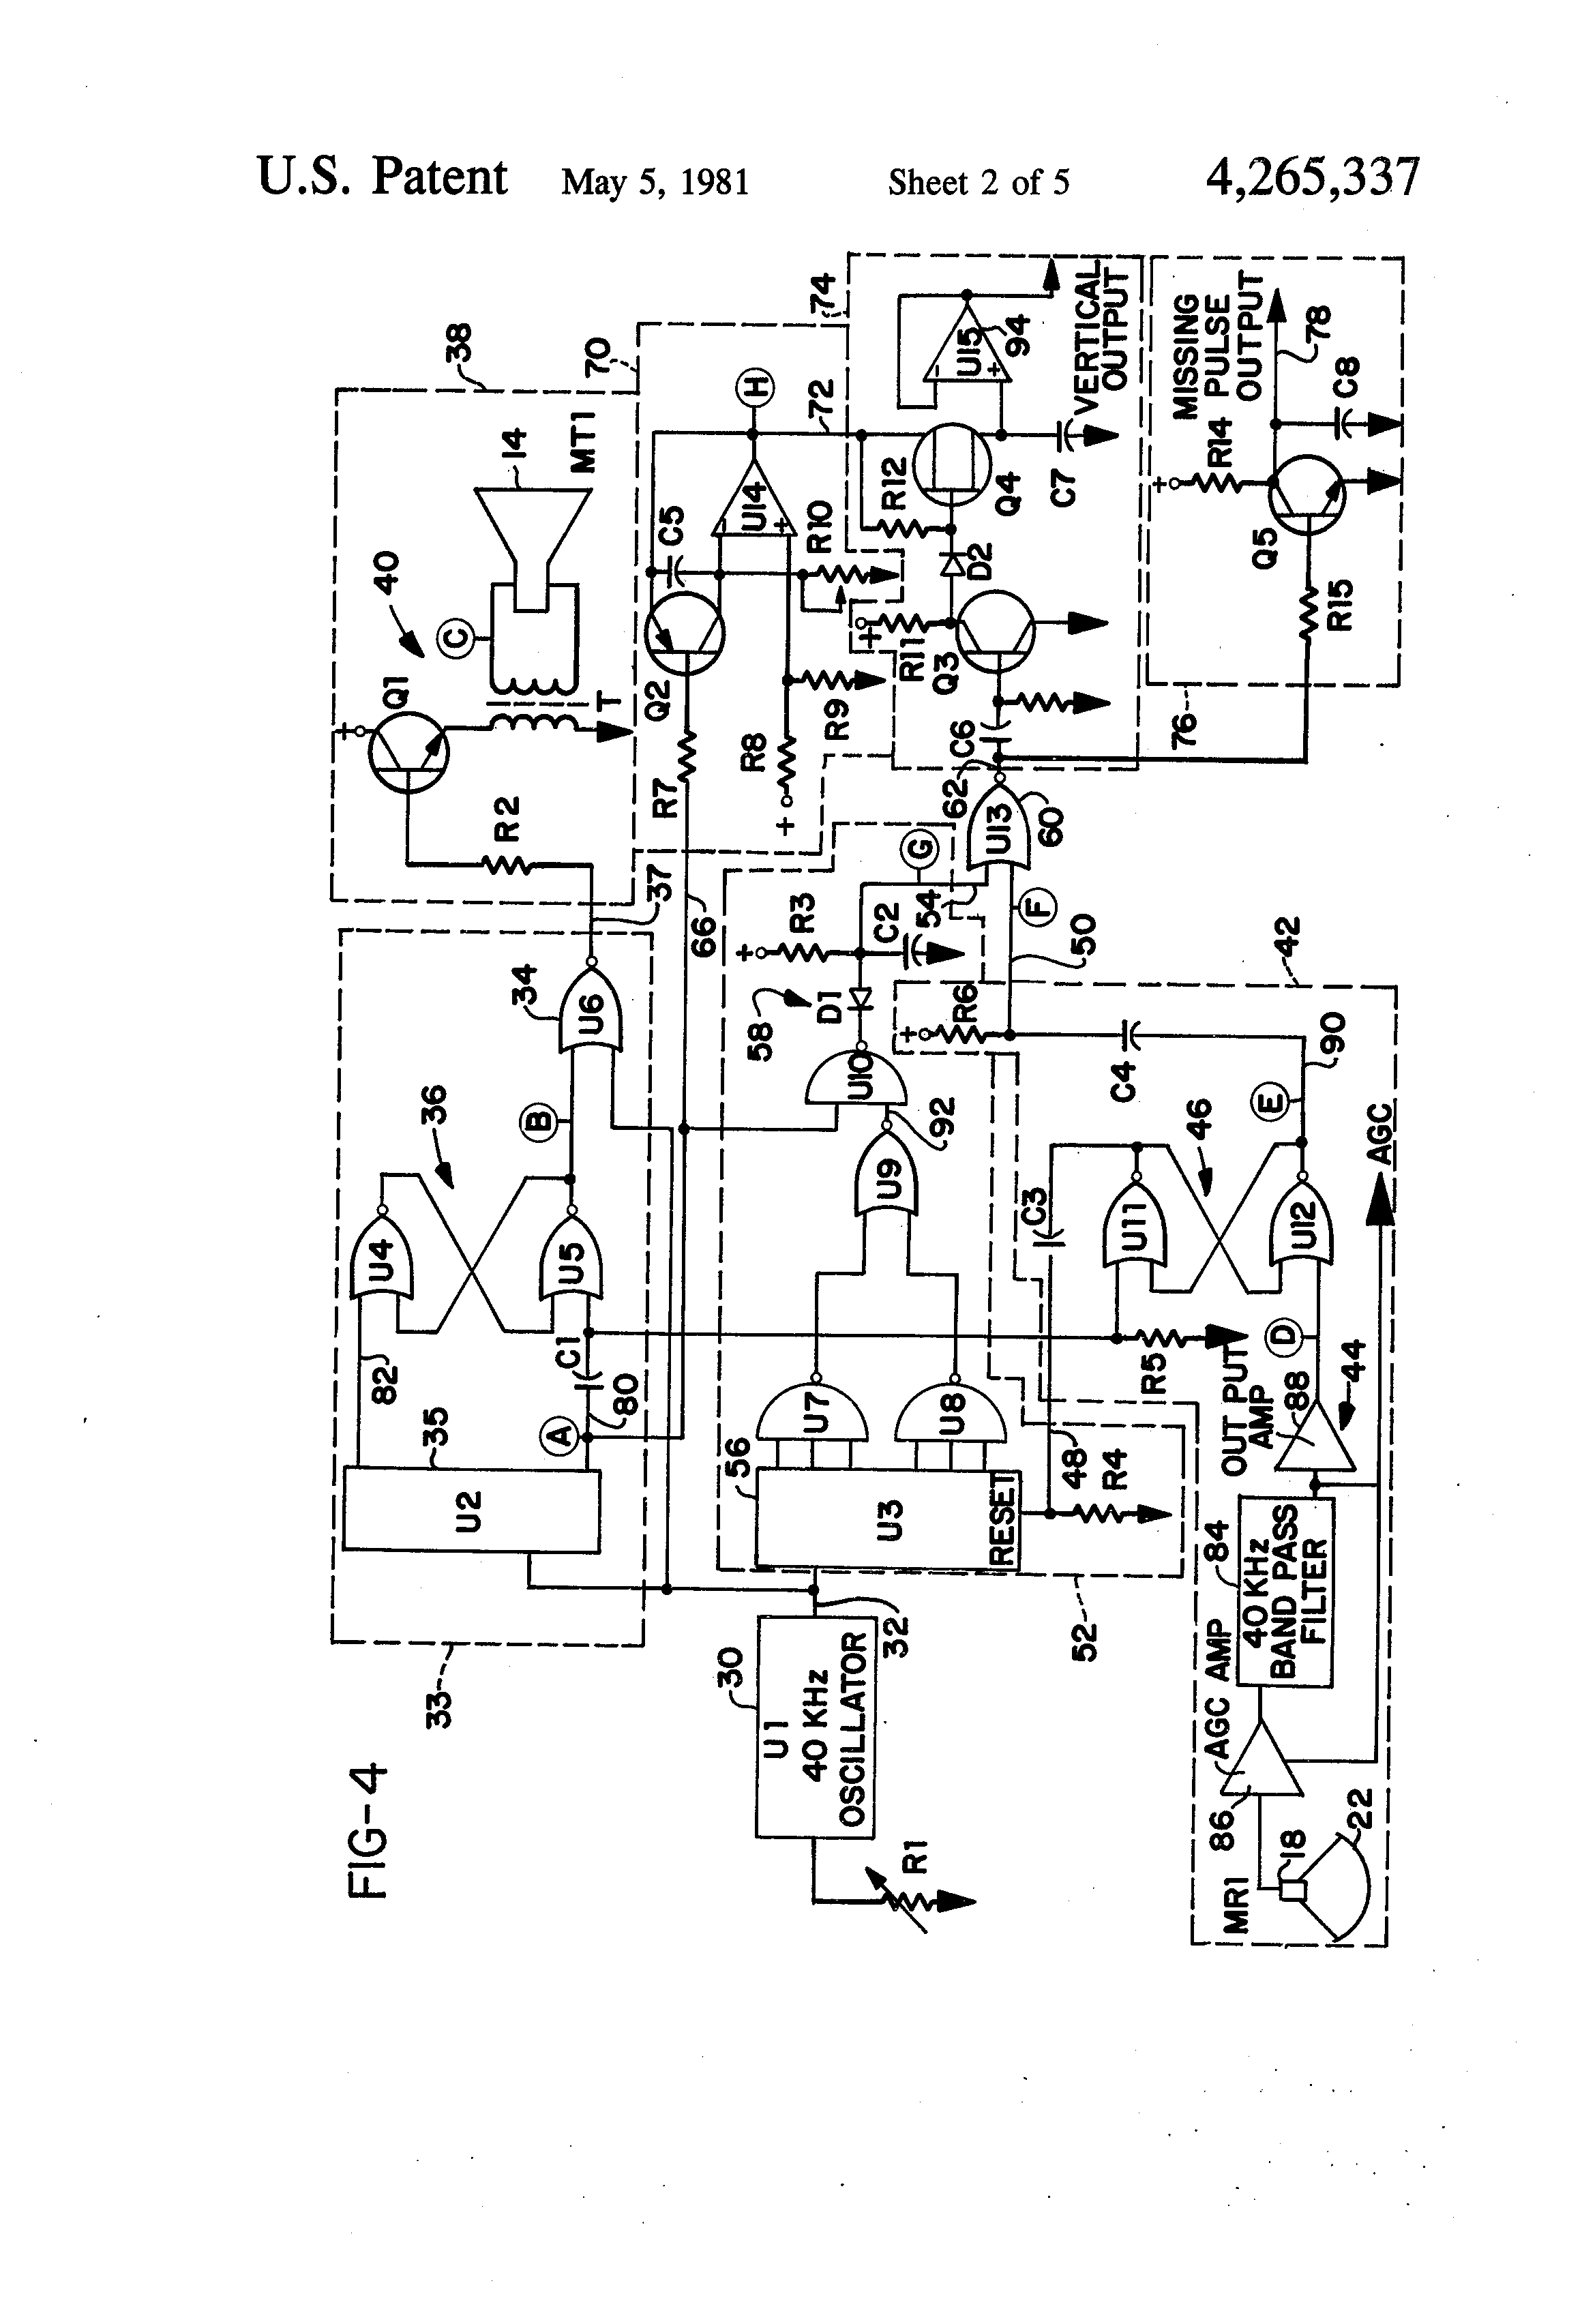 Shaw Box Hoist Wiring Diagram 29 Images Warn X8000i Yale Electric Chain Diagrams 113535 31